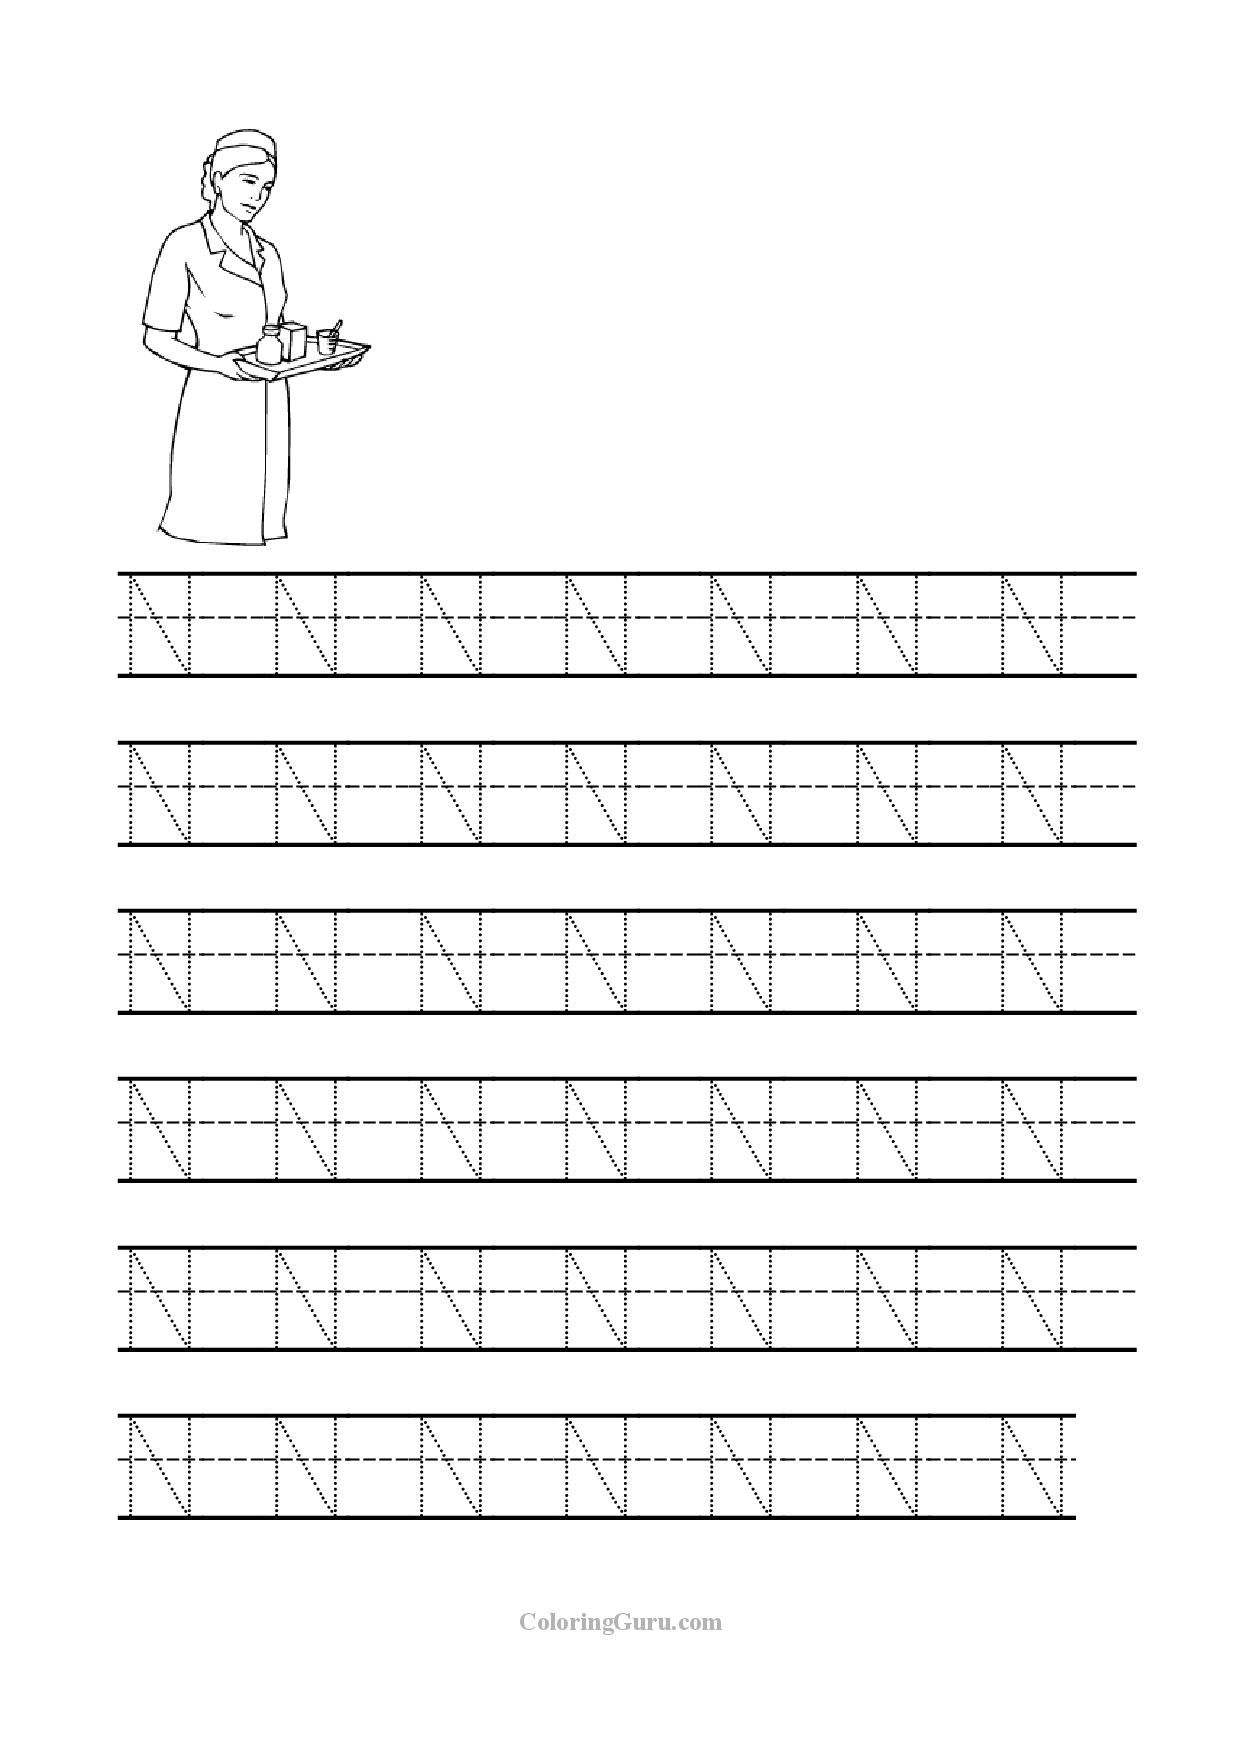 Free Printable Tracing Letter N Worksheets For Preschool inside Letter N Tracing Worksheets Preschool